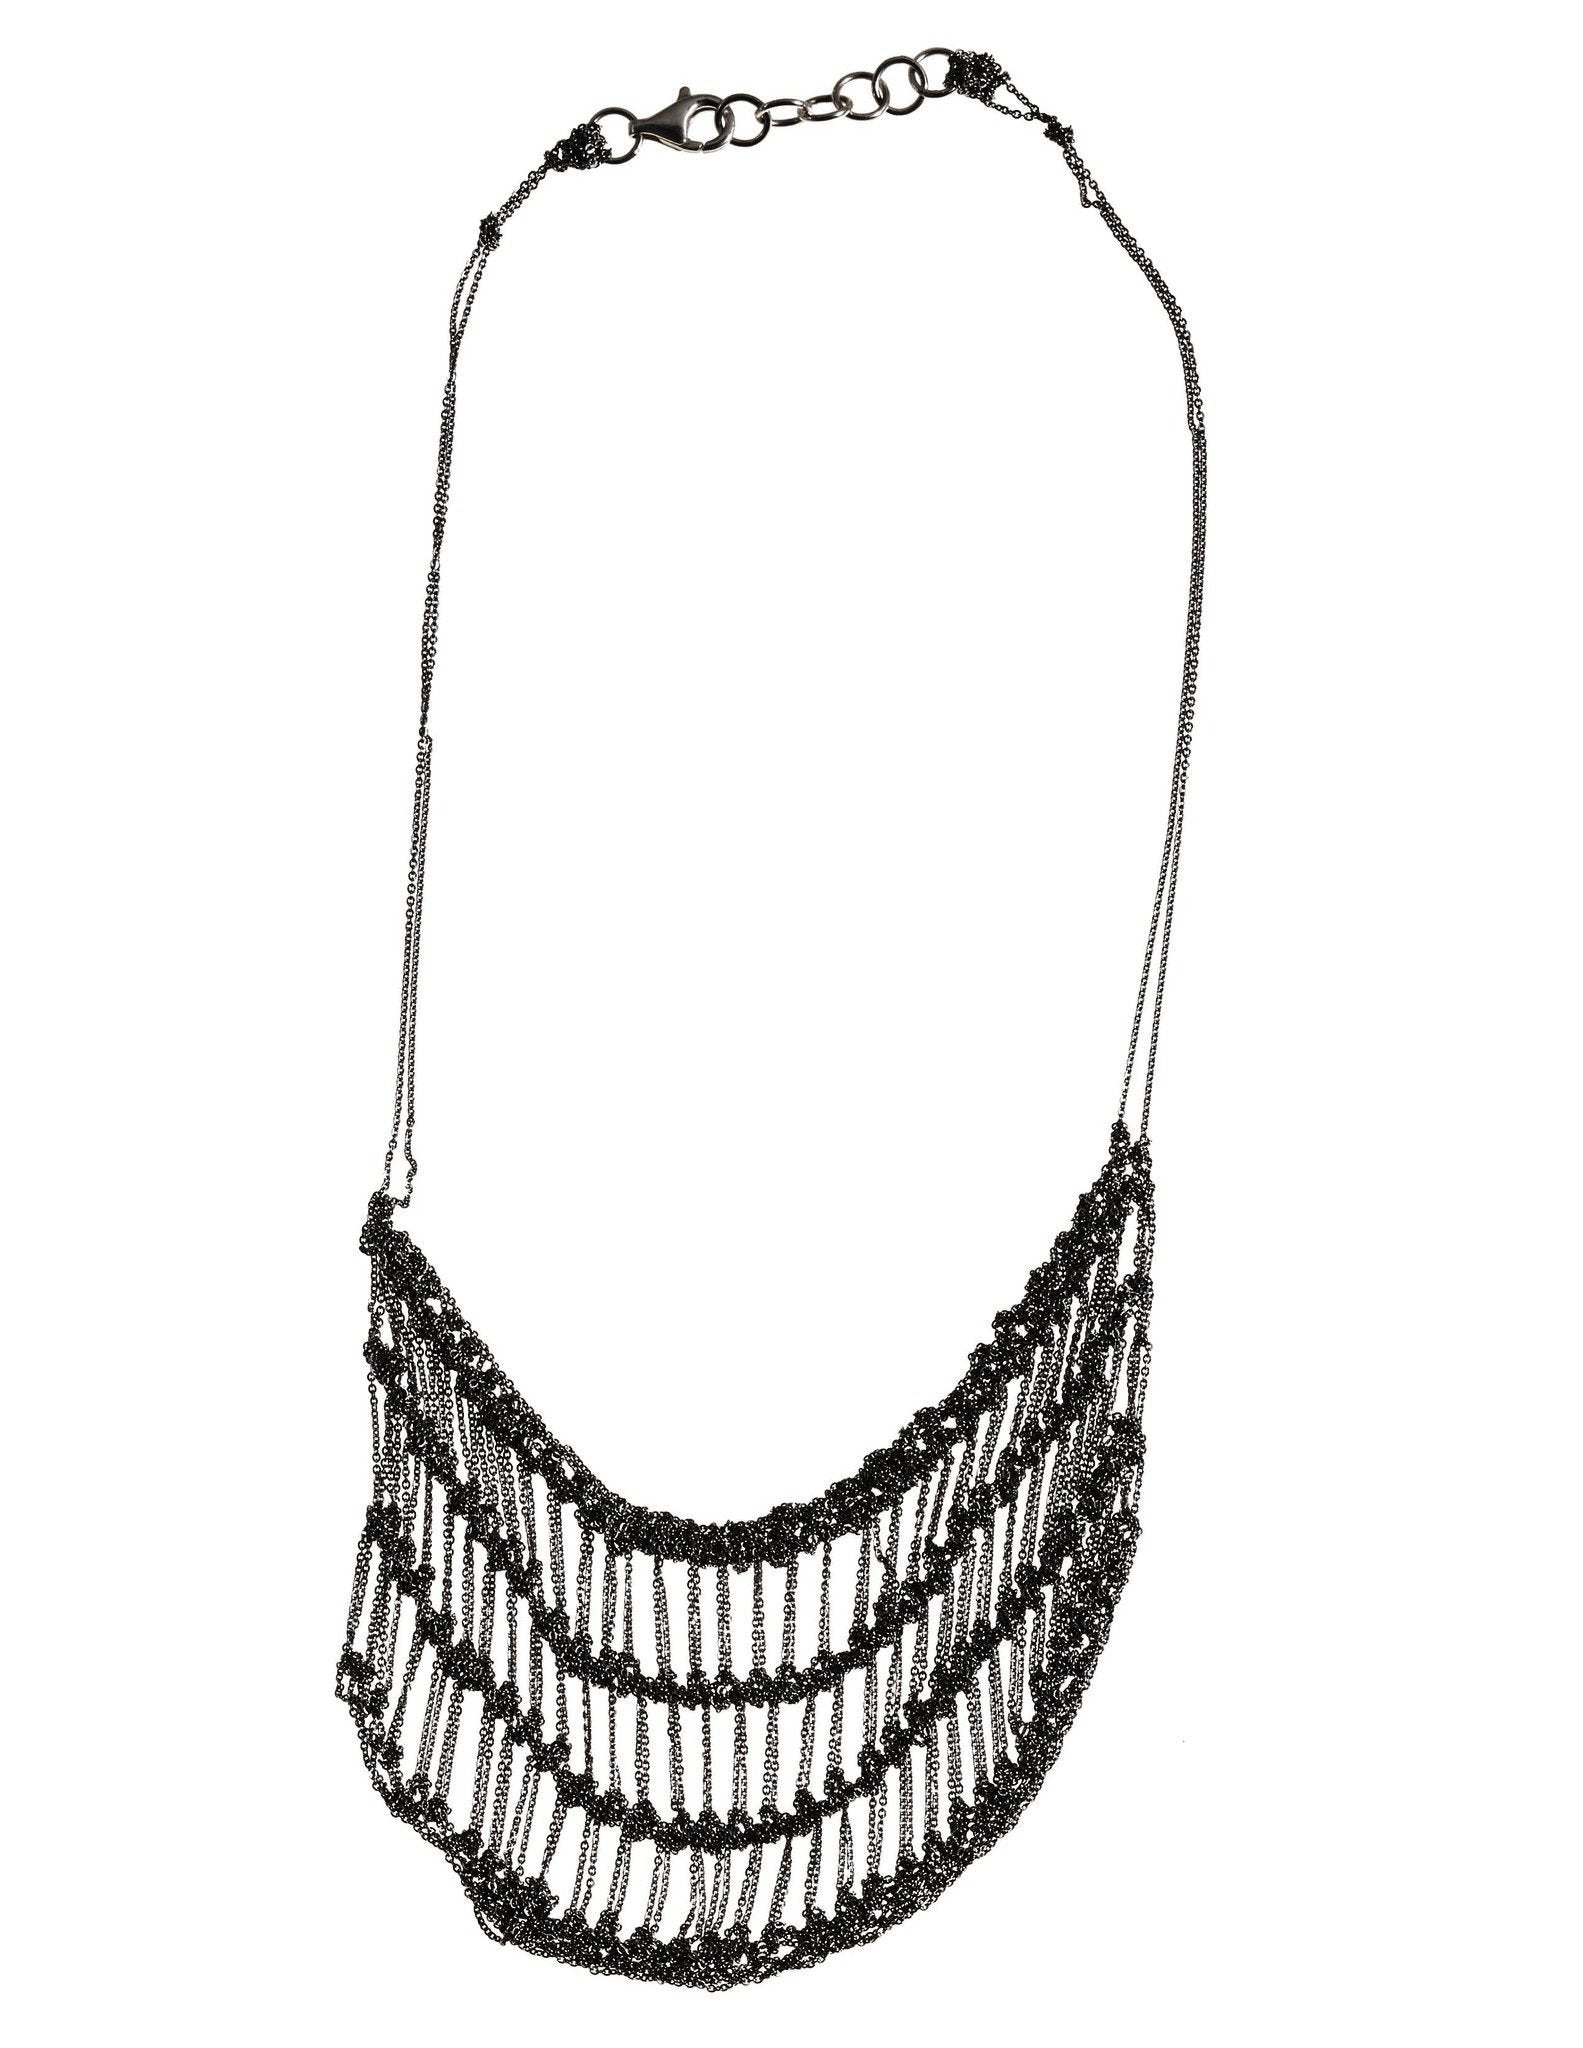 Frame Necklace in Charcoal